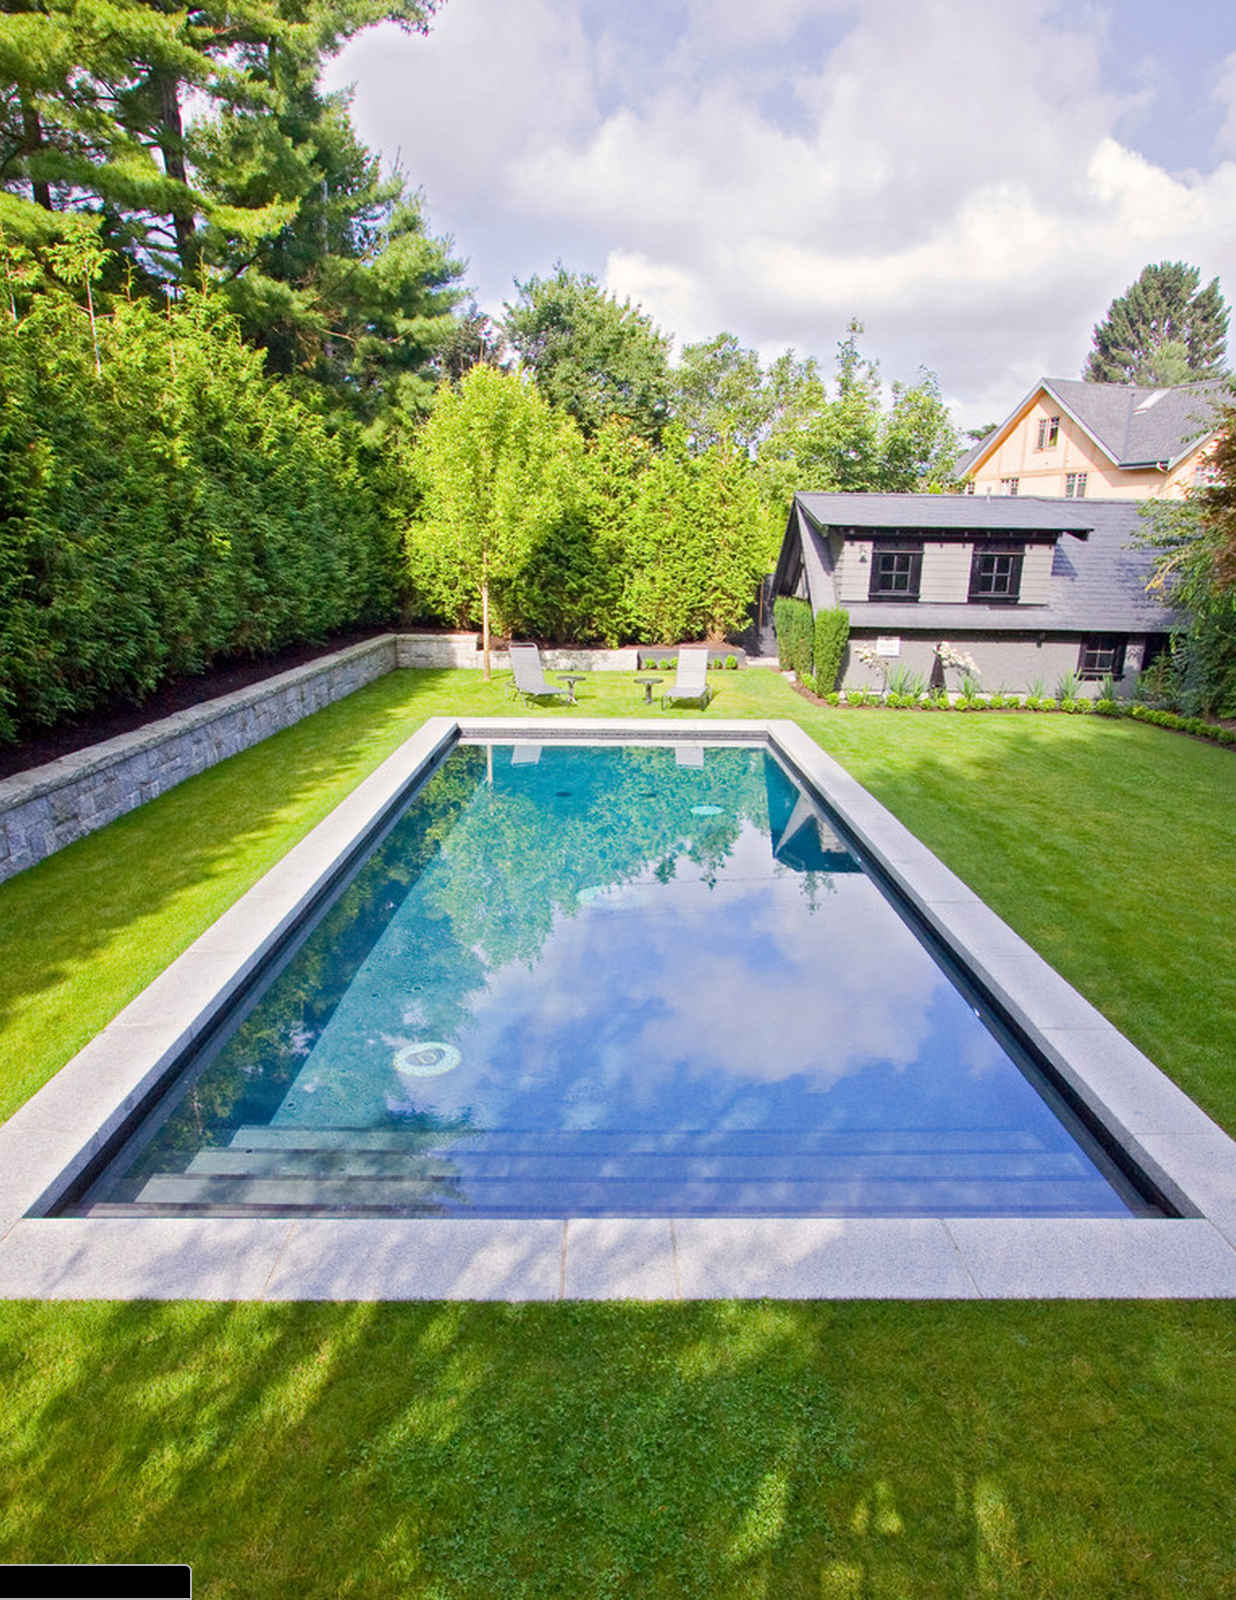 simple rectangle pool surrounded by grass | Pool | Pinterest ...